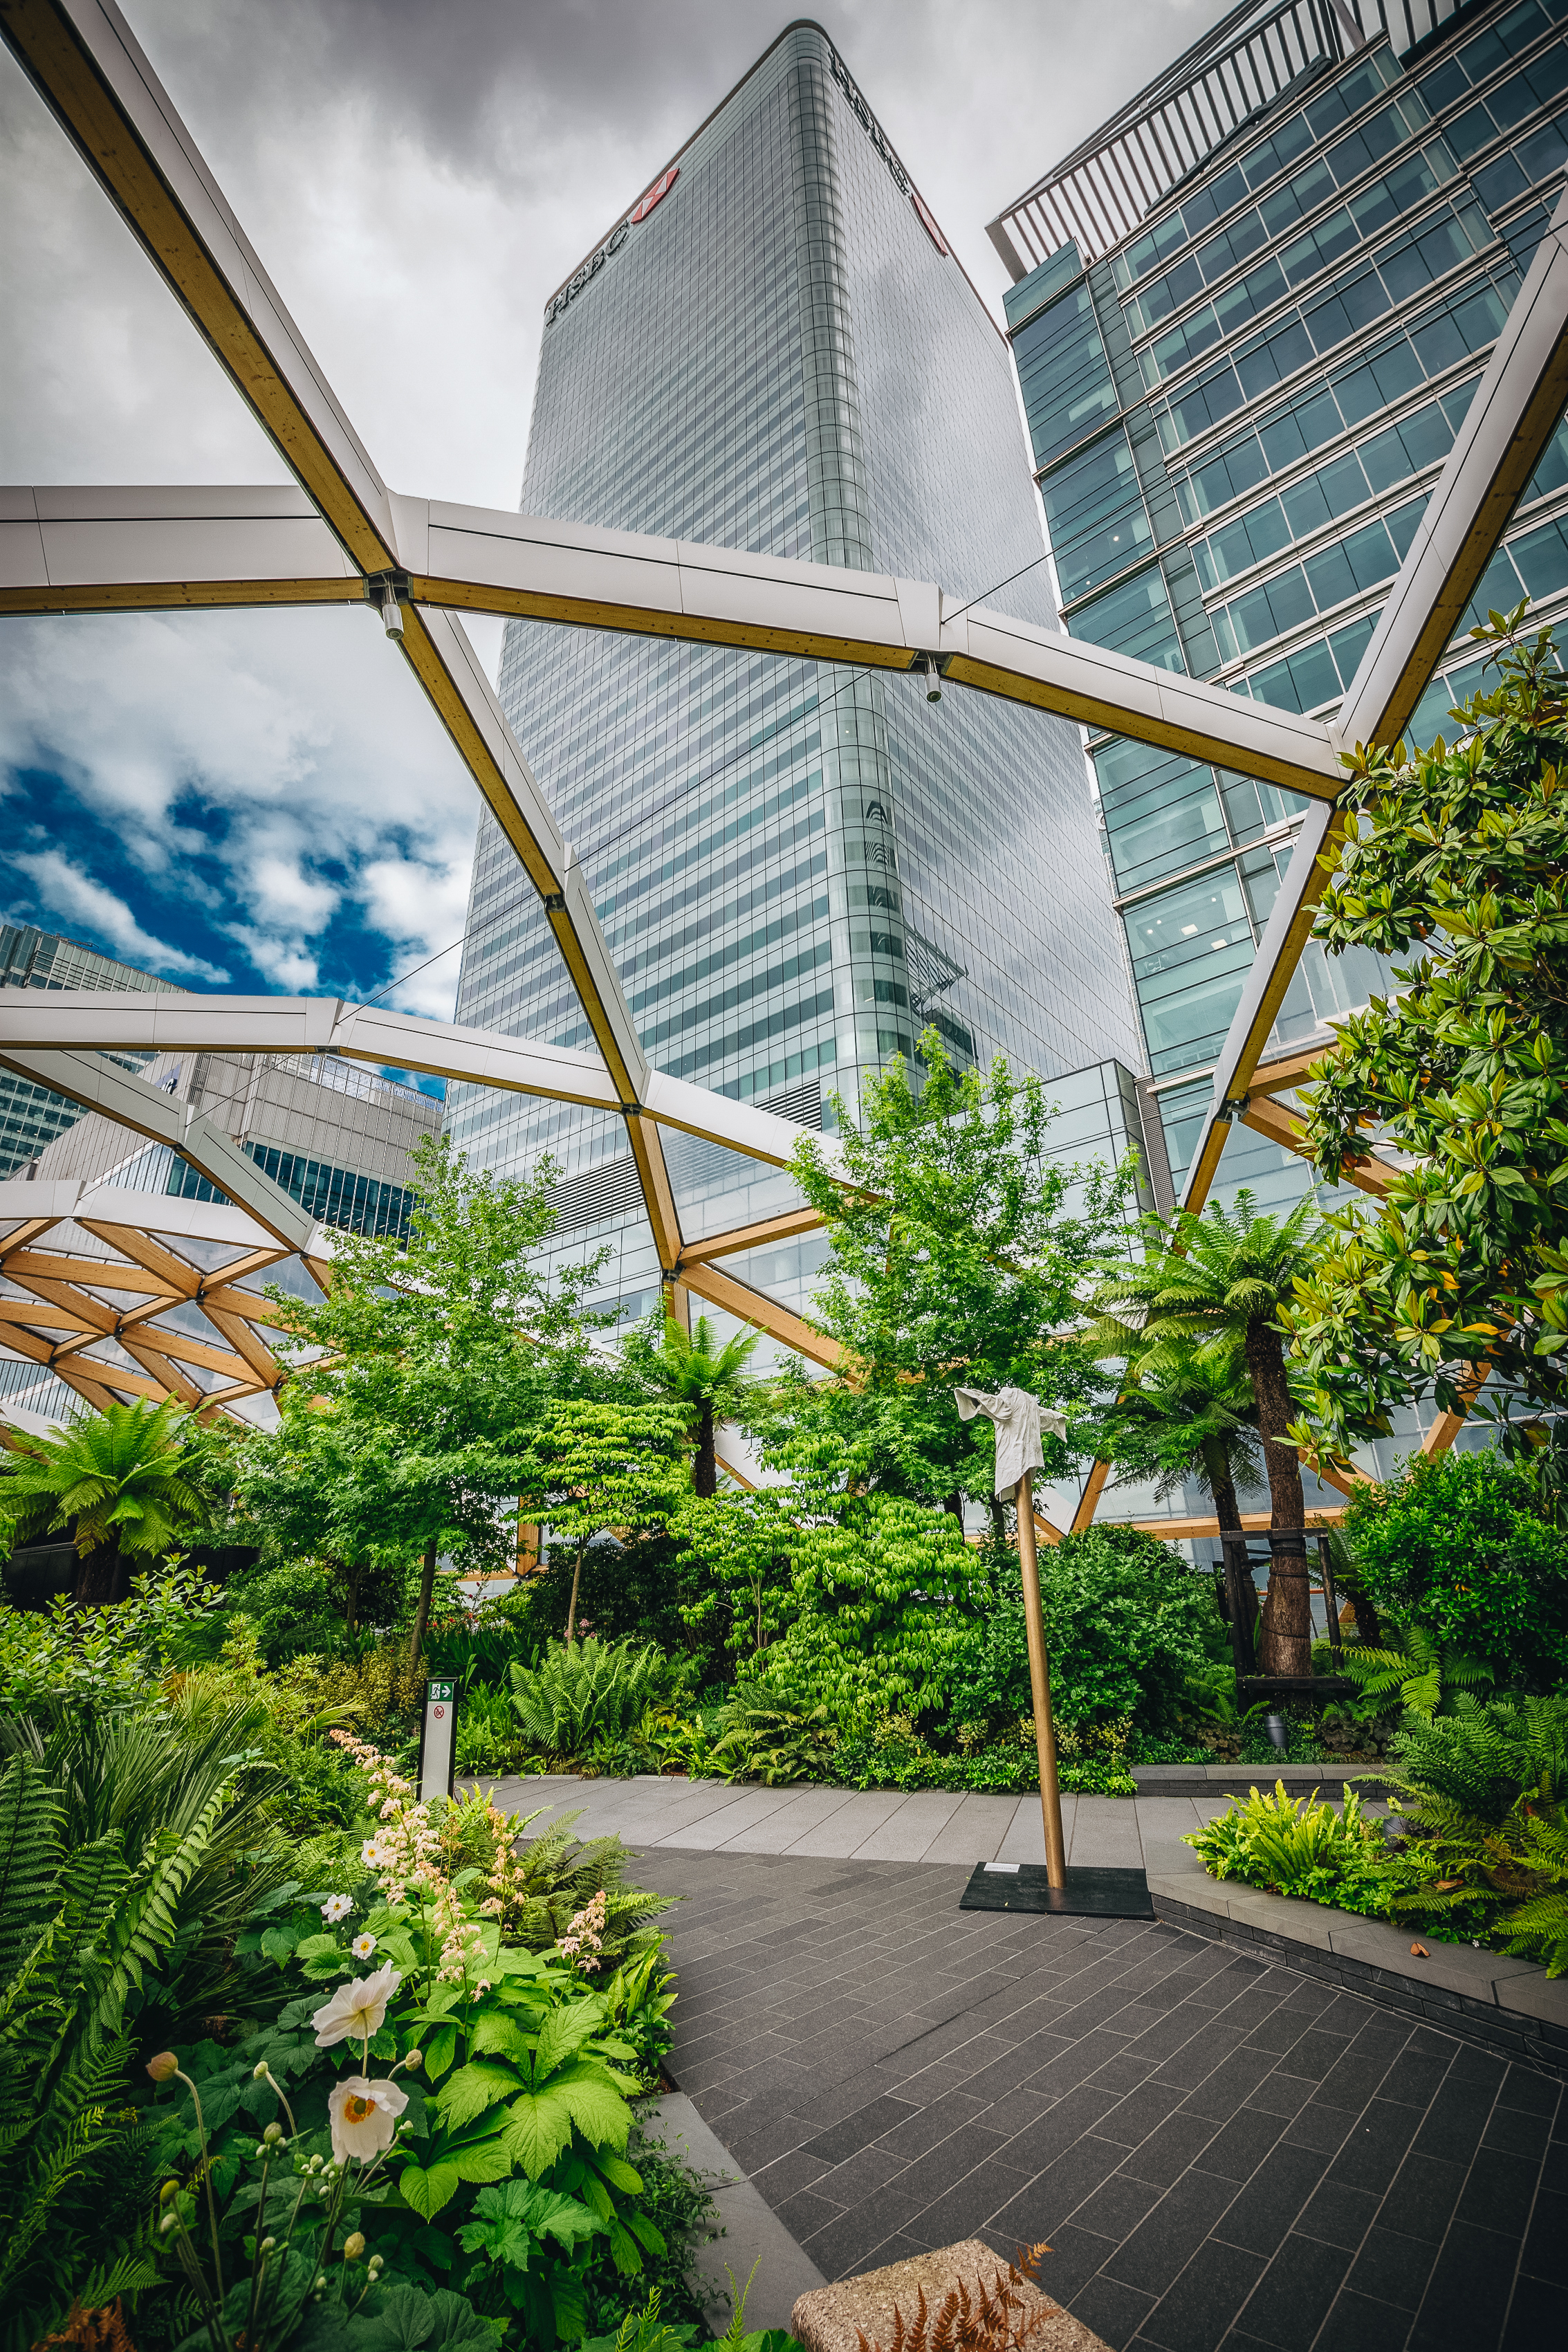 Crossrail Garden is a secret oasis in Canary Wharf. I'd never bothered to head down here before since there wasn't much that seemed interesting until I say this place on a map.